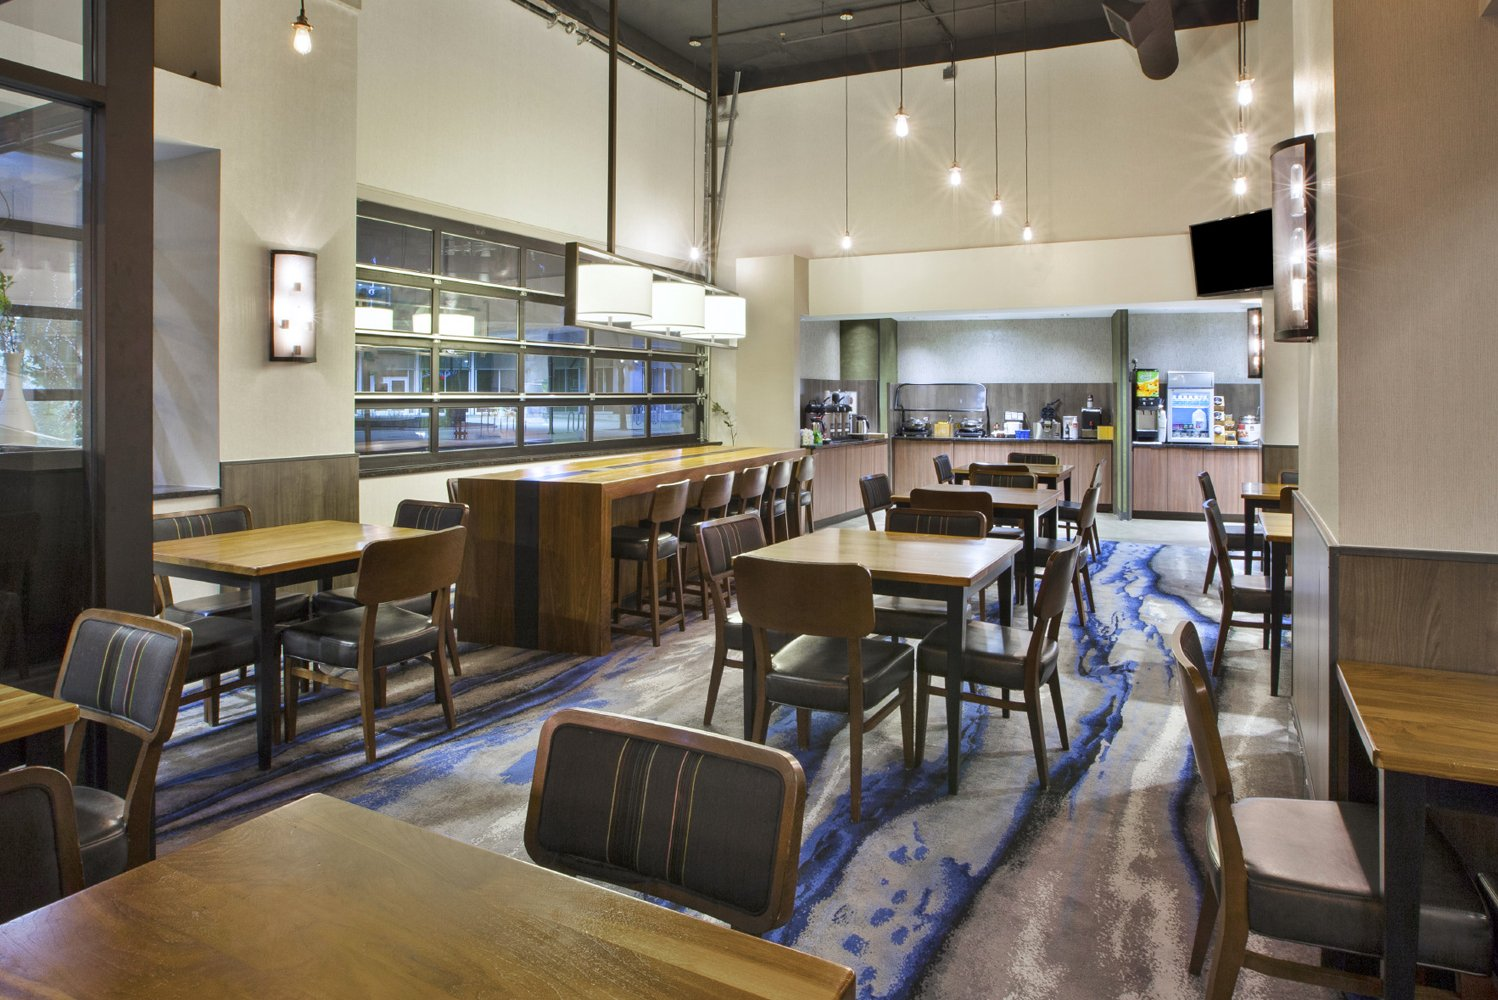 Fairfield Inn & Suites Milwaukee Downtown improved 103 guestrooms, public spaces and corridors.